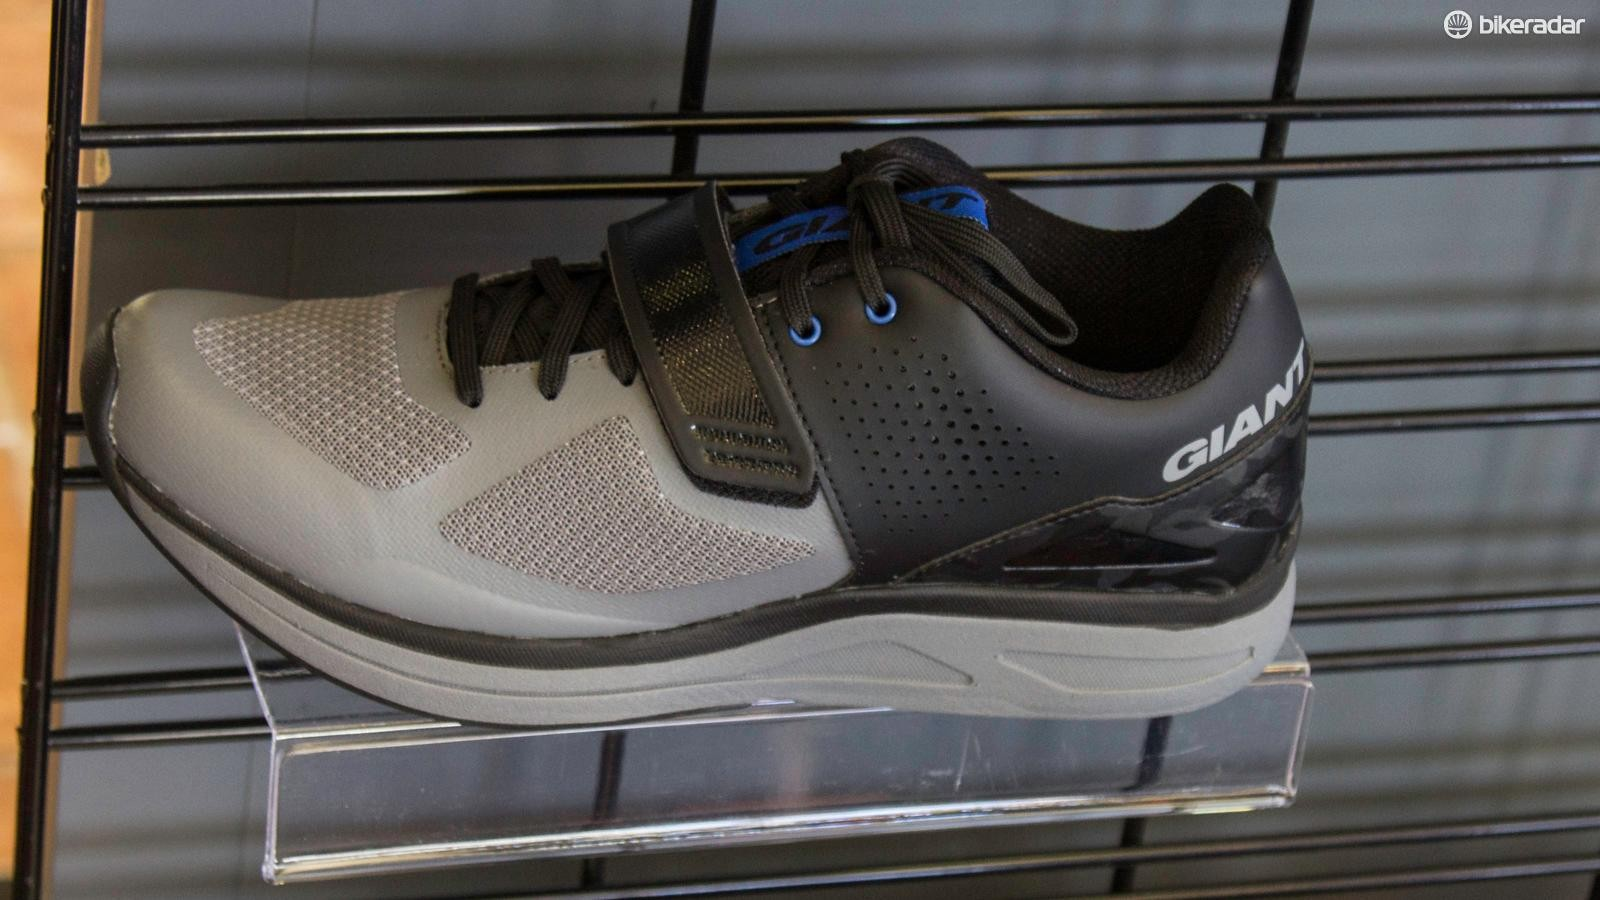 No Giant isn't making running shoes: there's an SPD nylon plate hidden in the sole